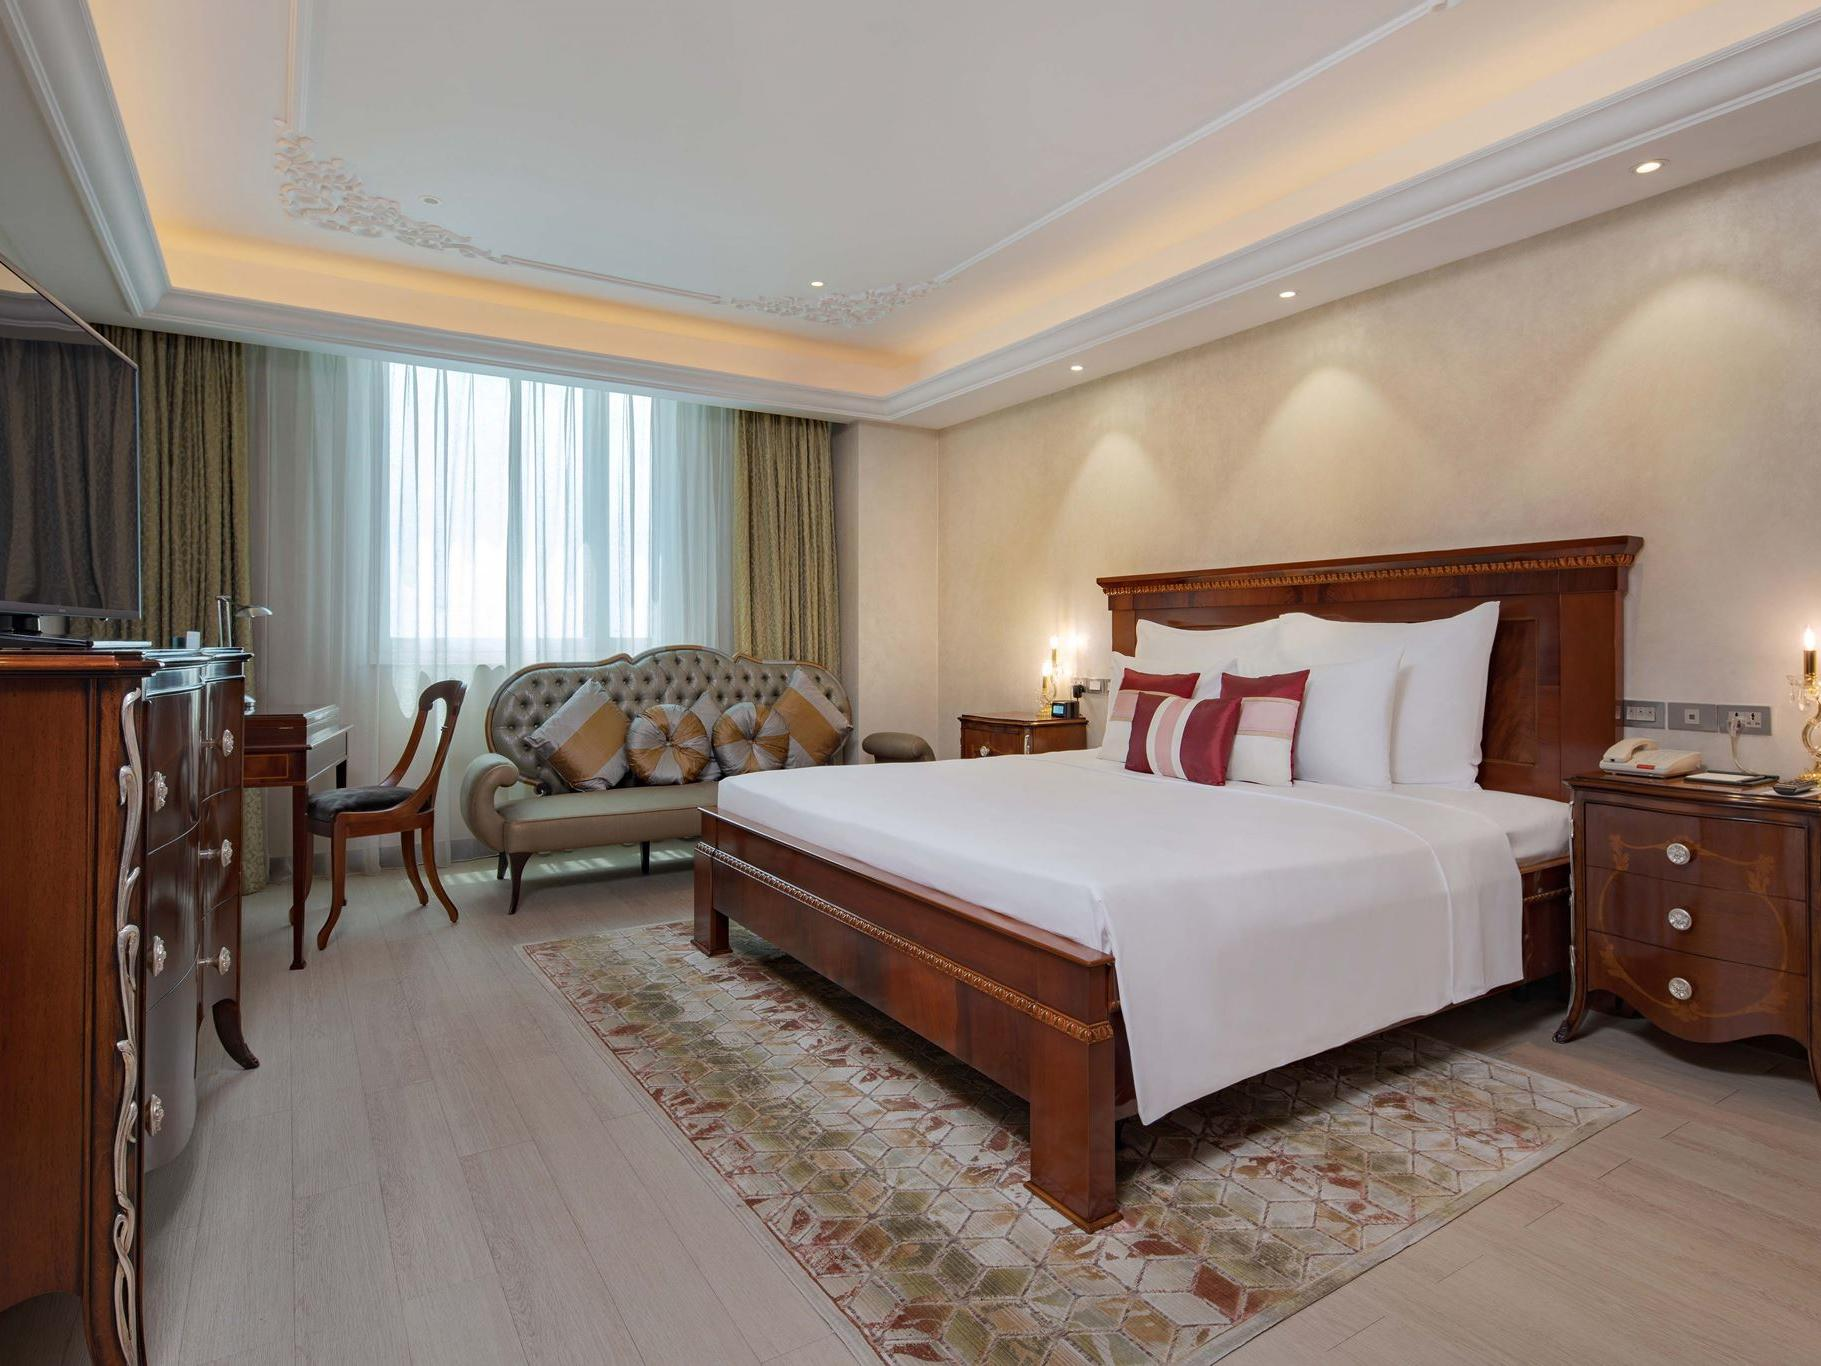 well lit hotel room with king bed and wood furniture